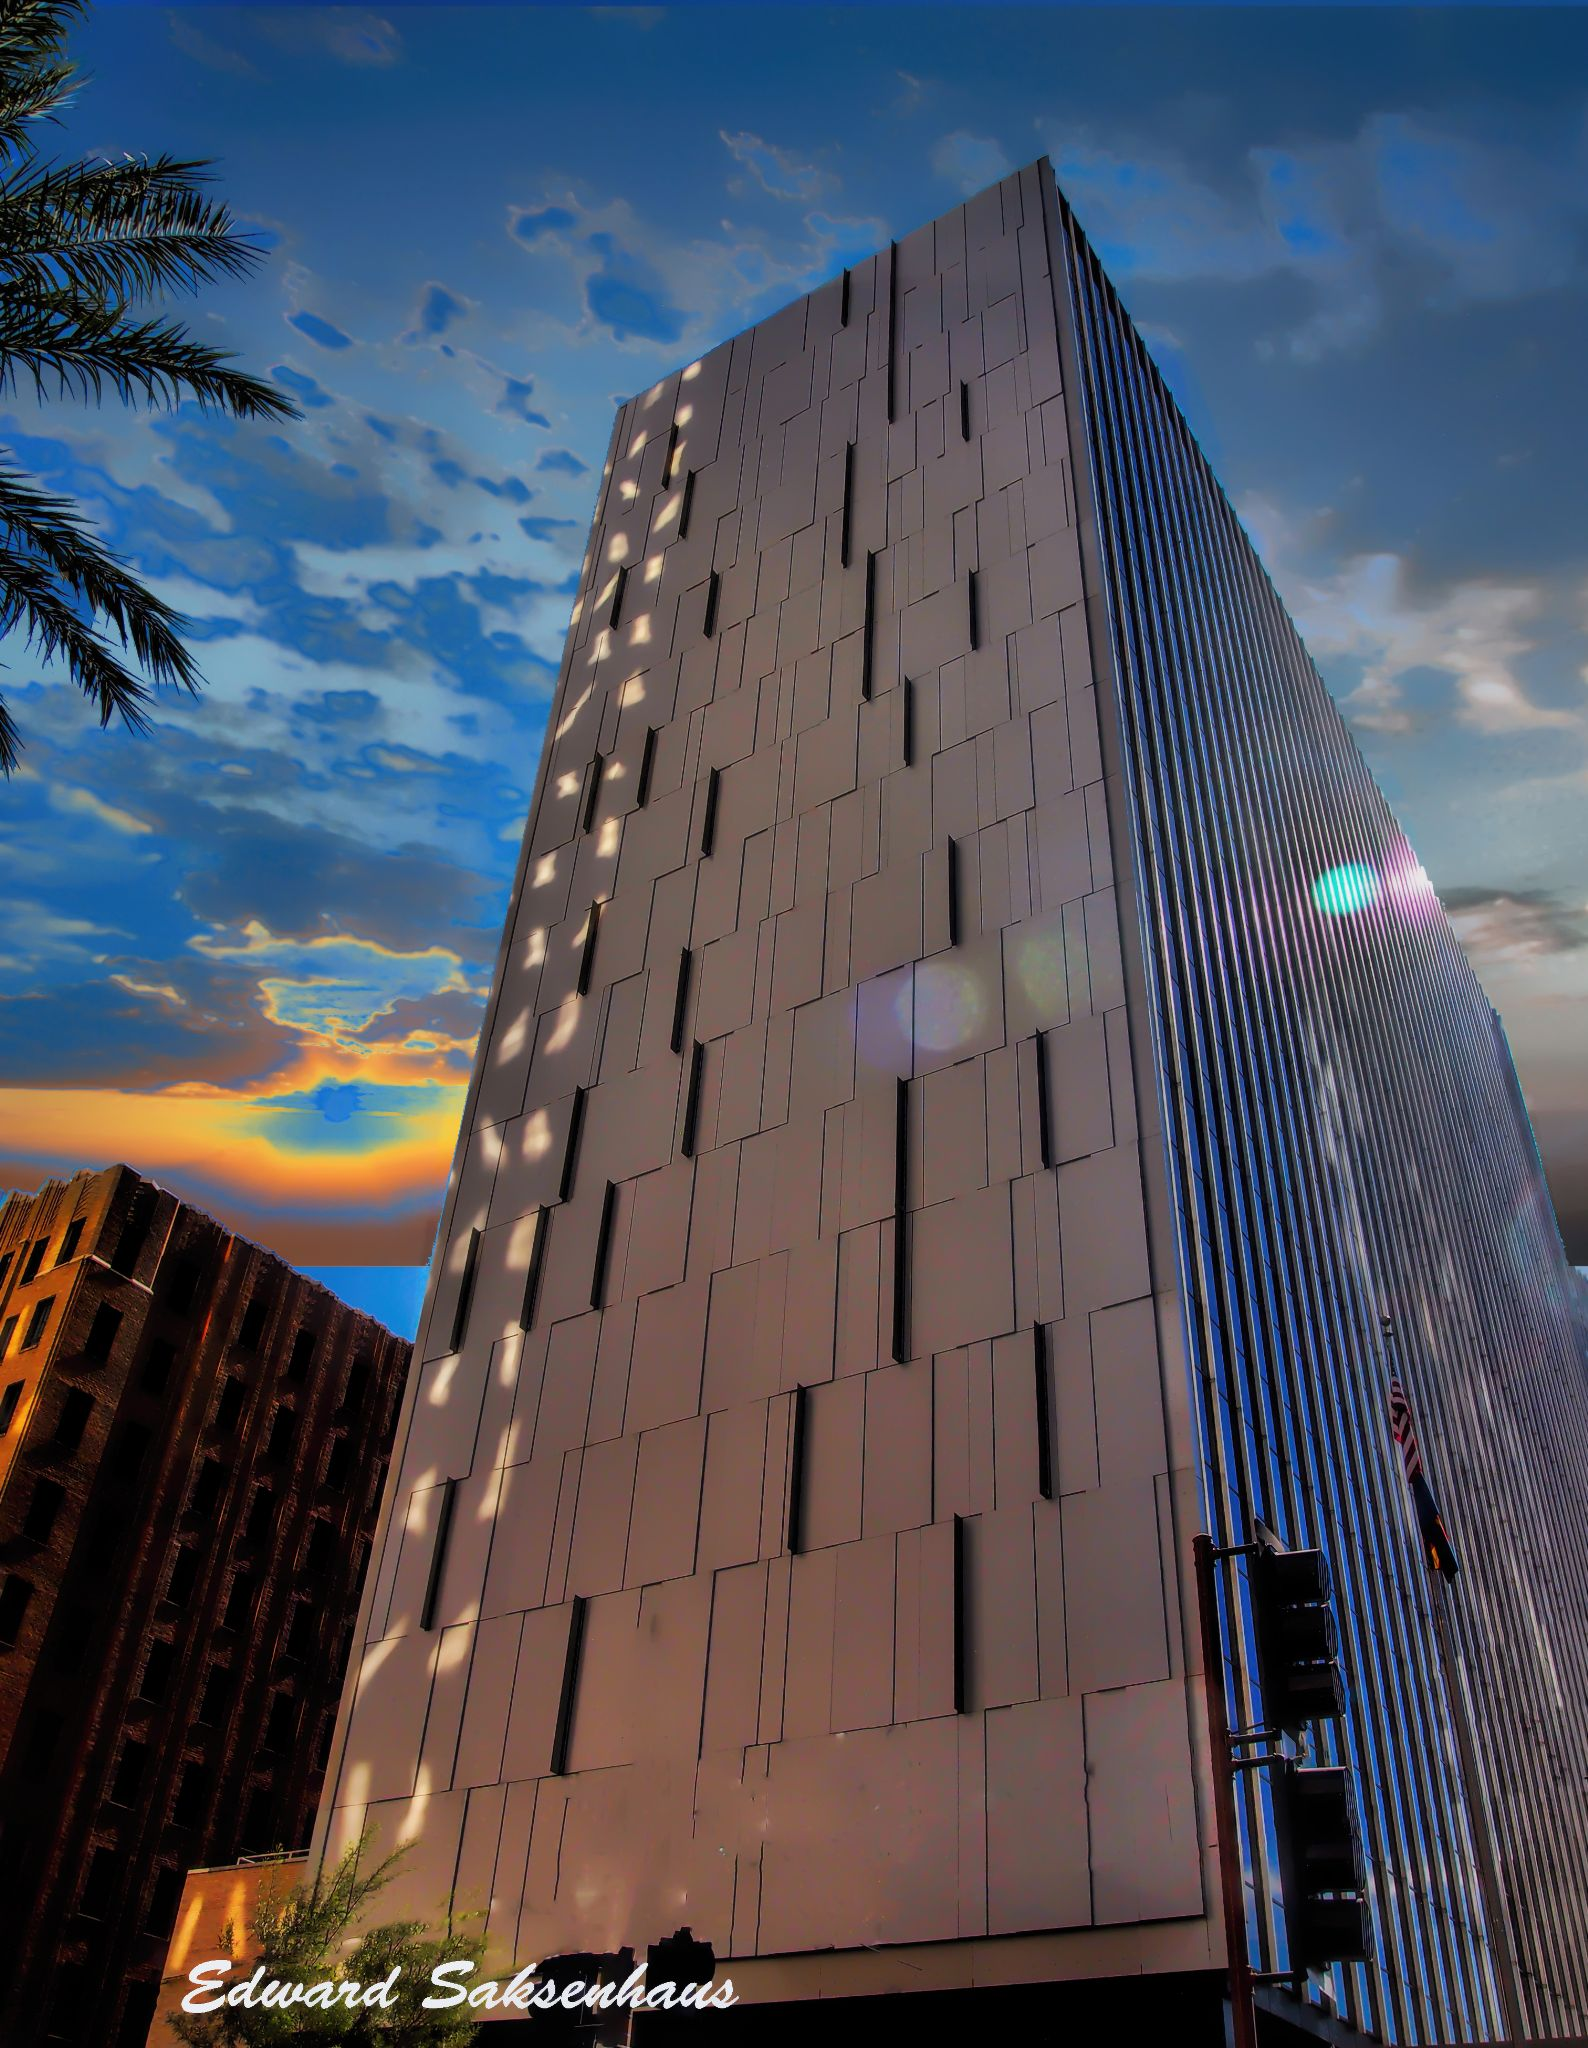 An Architectural View of Downtown Phoenix No.37. by Edward Saksenhaus